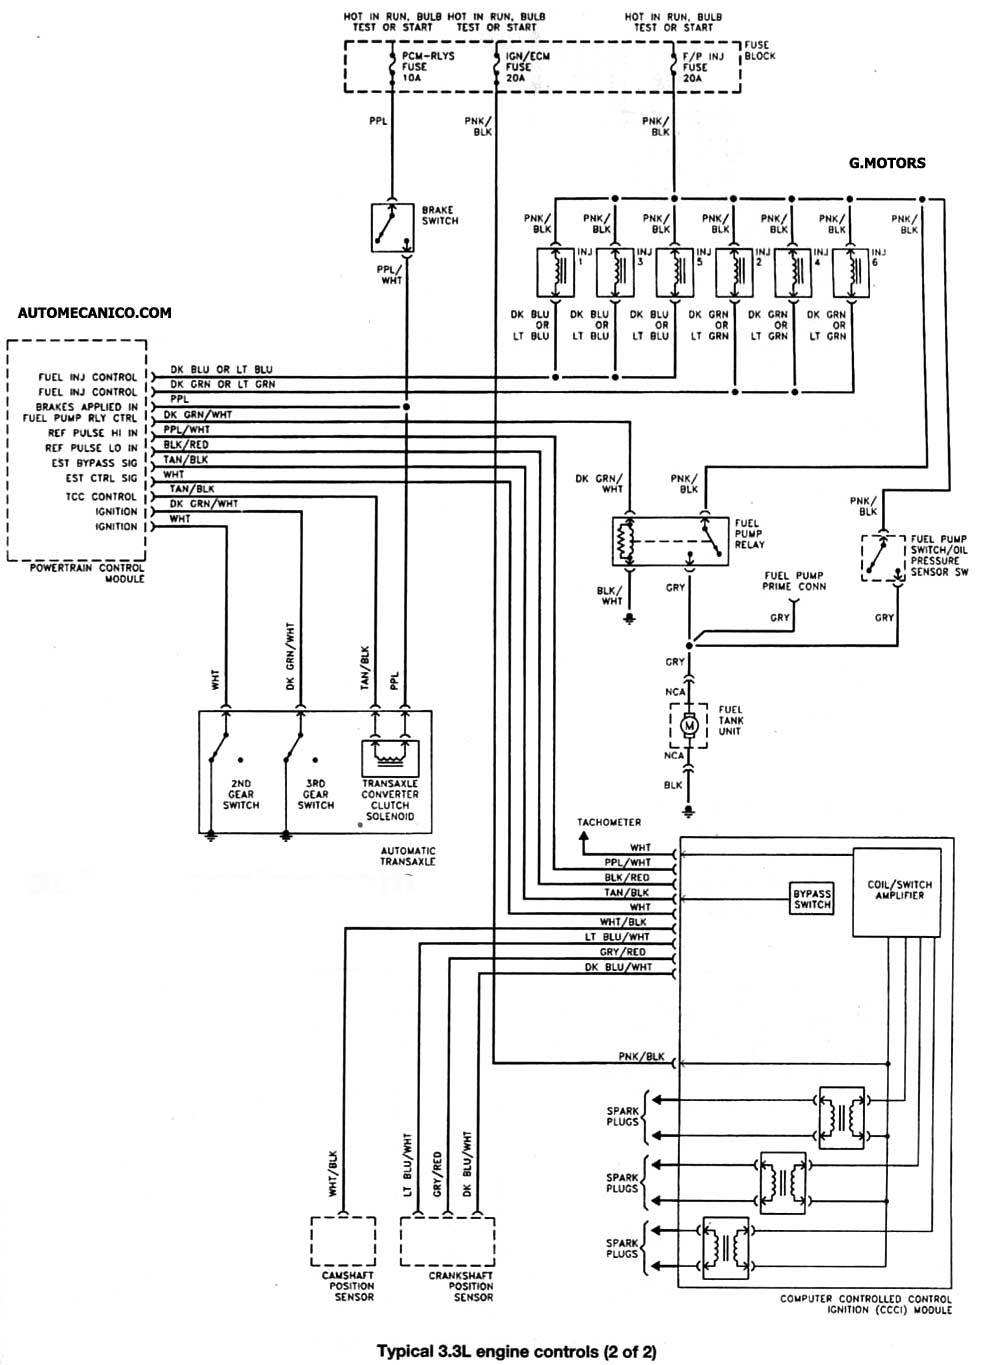 2001 Jeep Grand Cherokee Engine Diagram Auto Electrical Wiring Related With